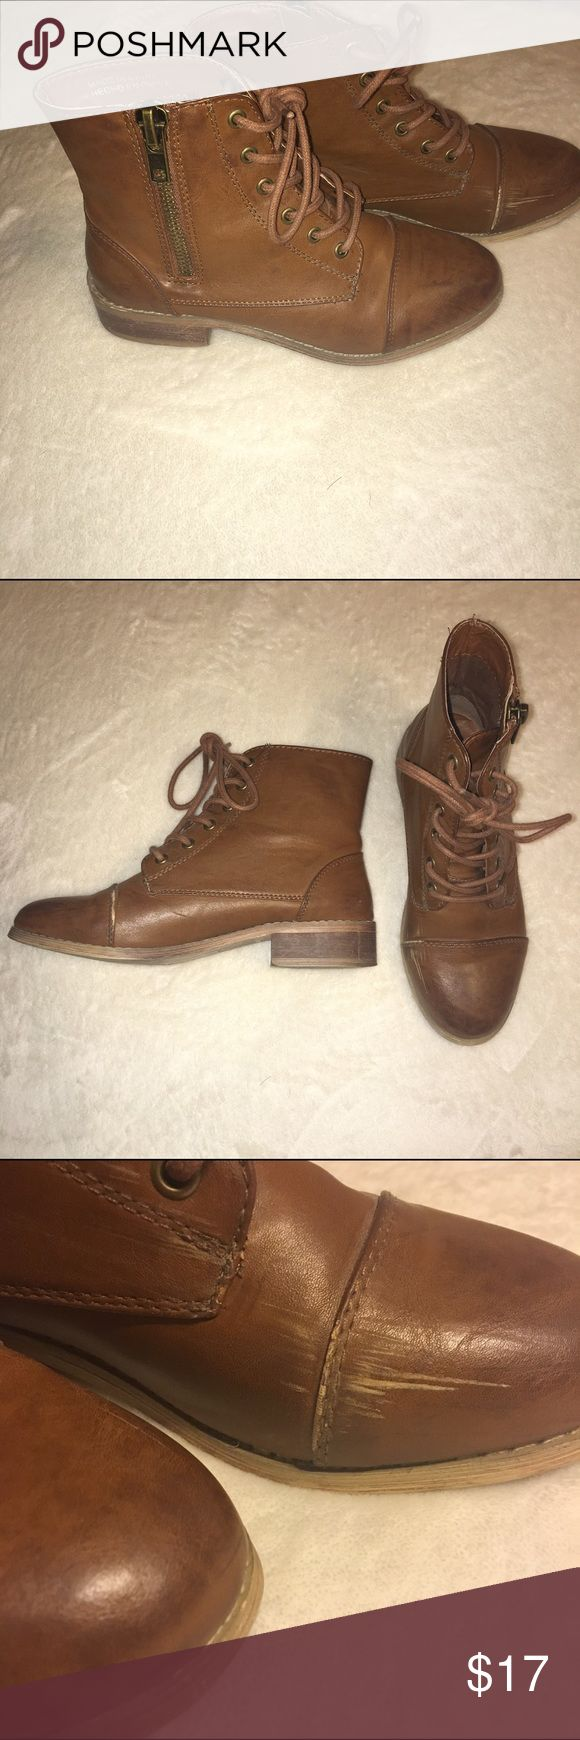 Short Brown Combat Boots Worn once, has a little scuff on the side as shown in the picture! Forever 21 Shoes Combat & Moto Boots